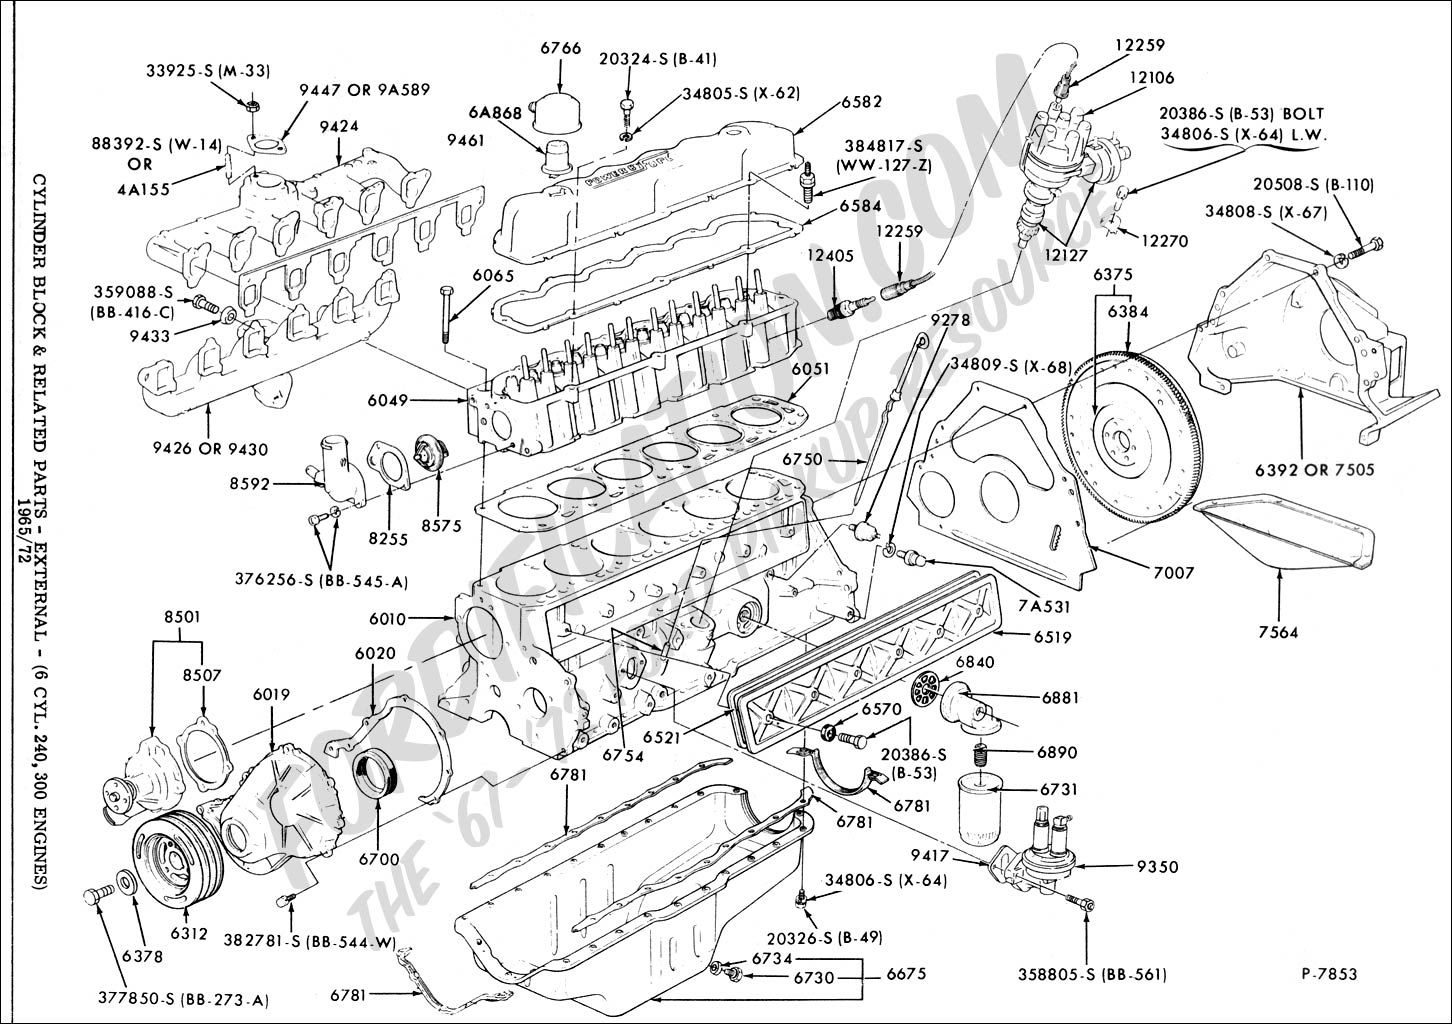 hight resolution of 1970 ford 302 engine diagram wiring diagram toolbox 2013 mustang gt parts diagram 1970 ford 302